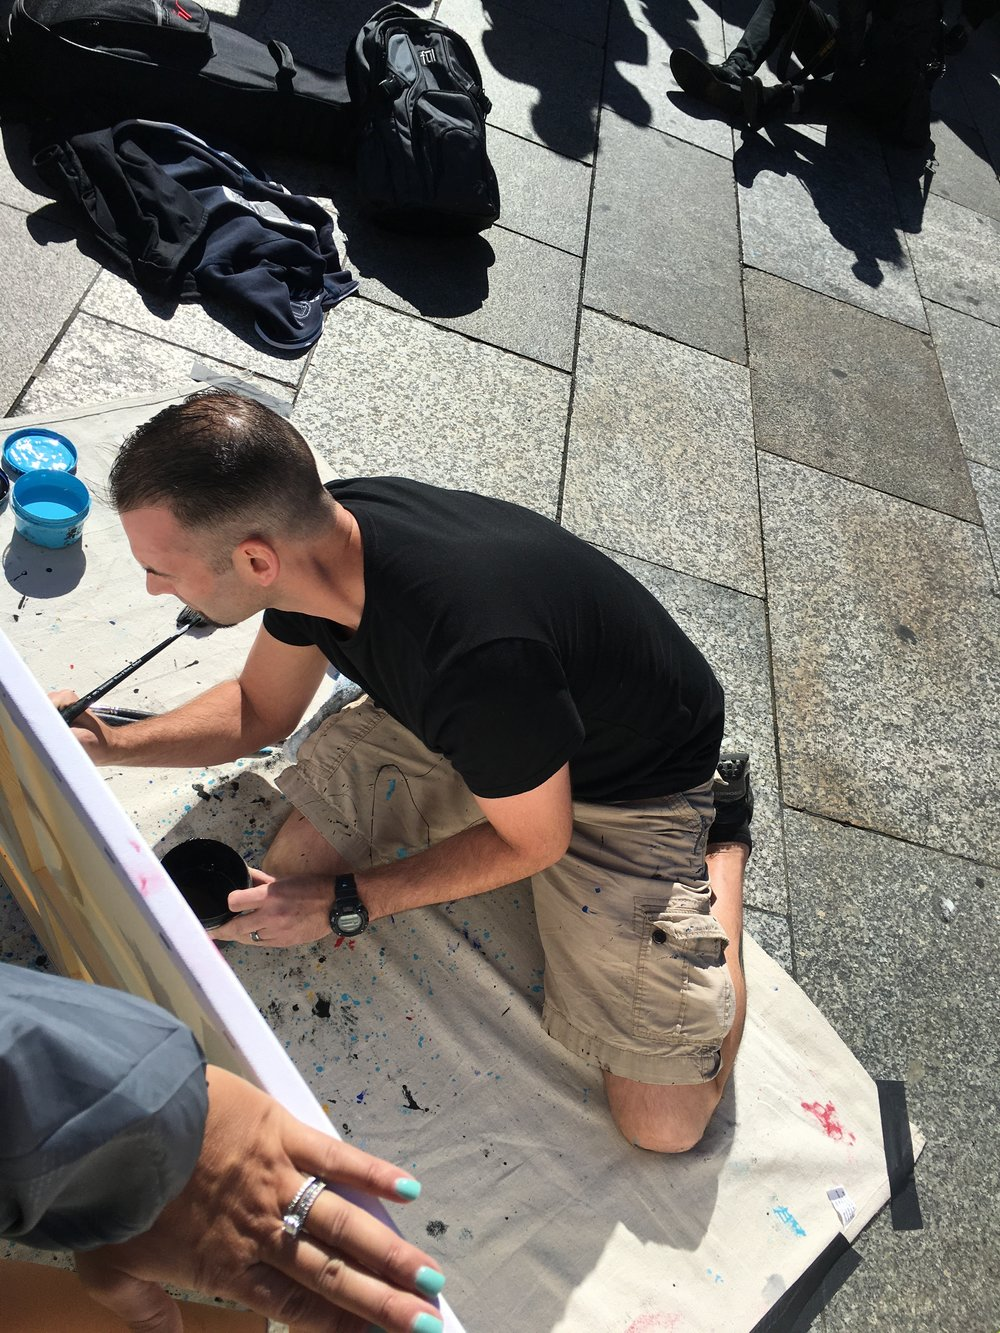 Painting in the Streets of Germany